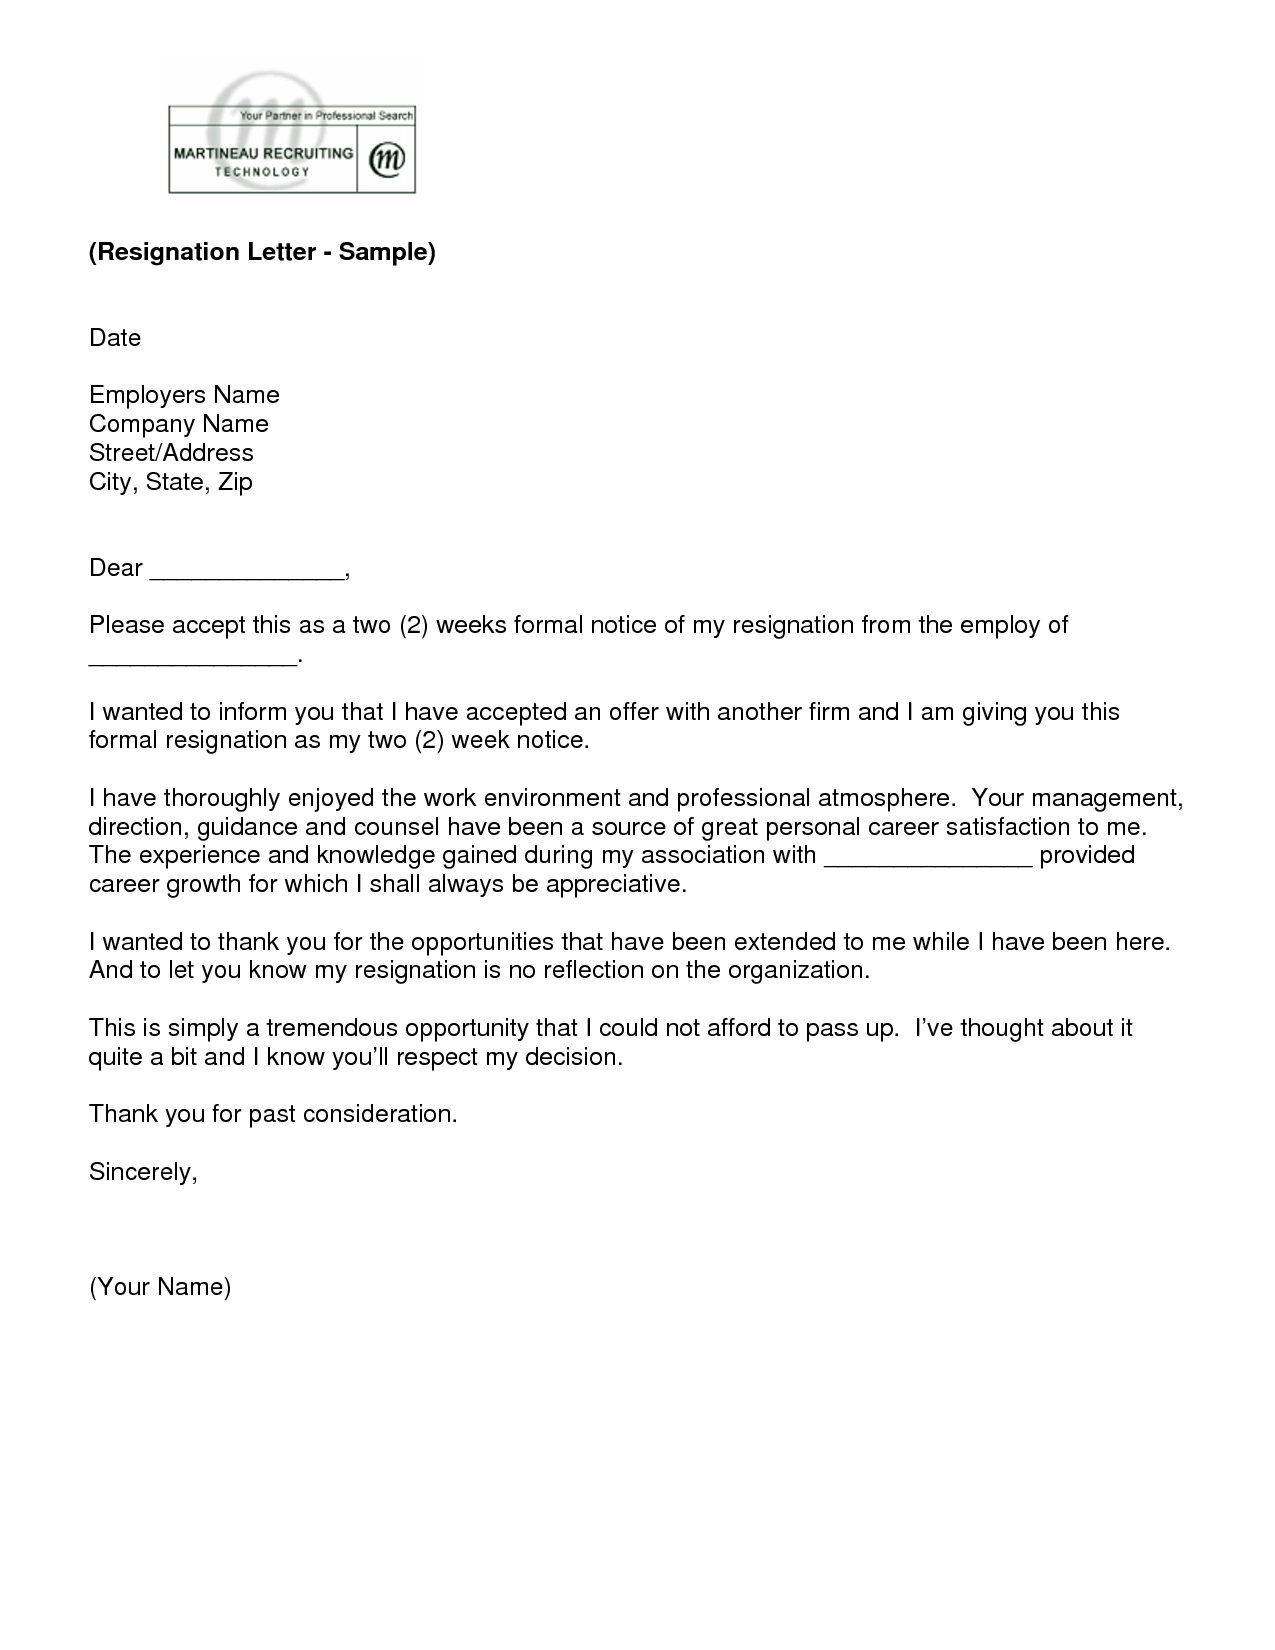 Letter Of Resignation 2 Weeks Notice Template | Ew